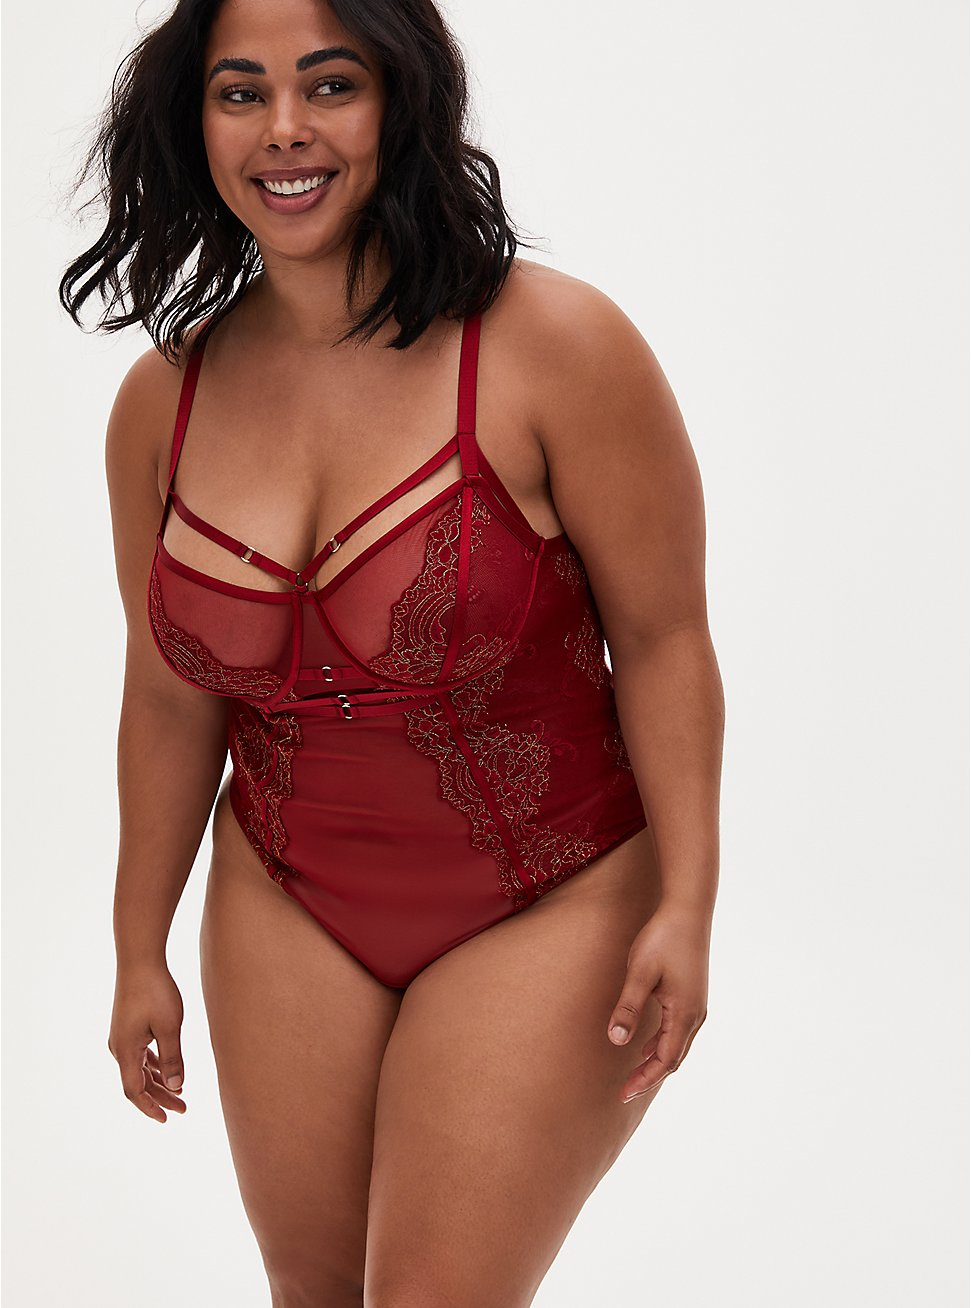 Red Mesh & Lace Harness Thong Bodysuit, BIKING RED, hi-res